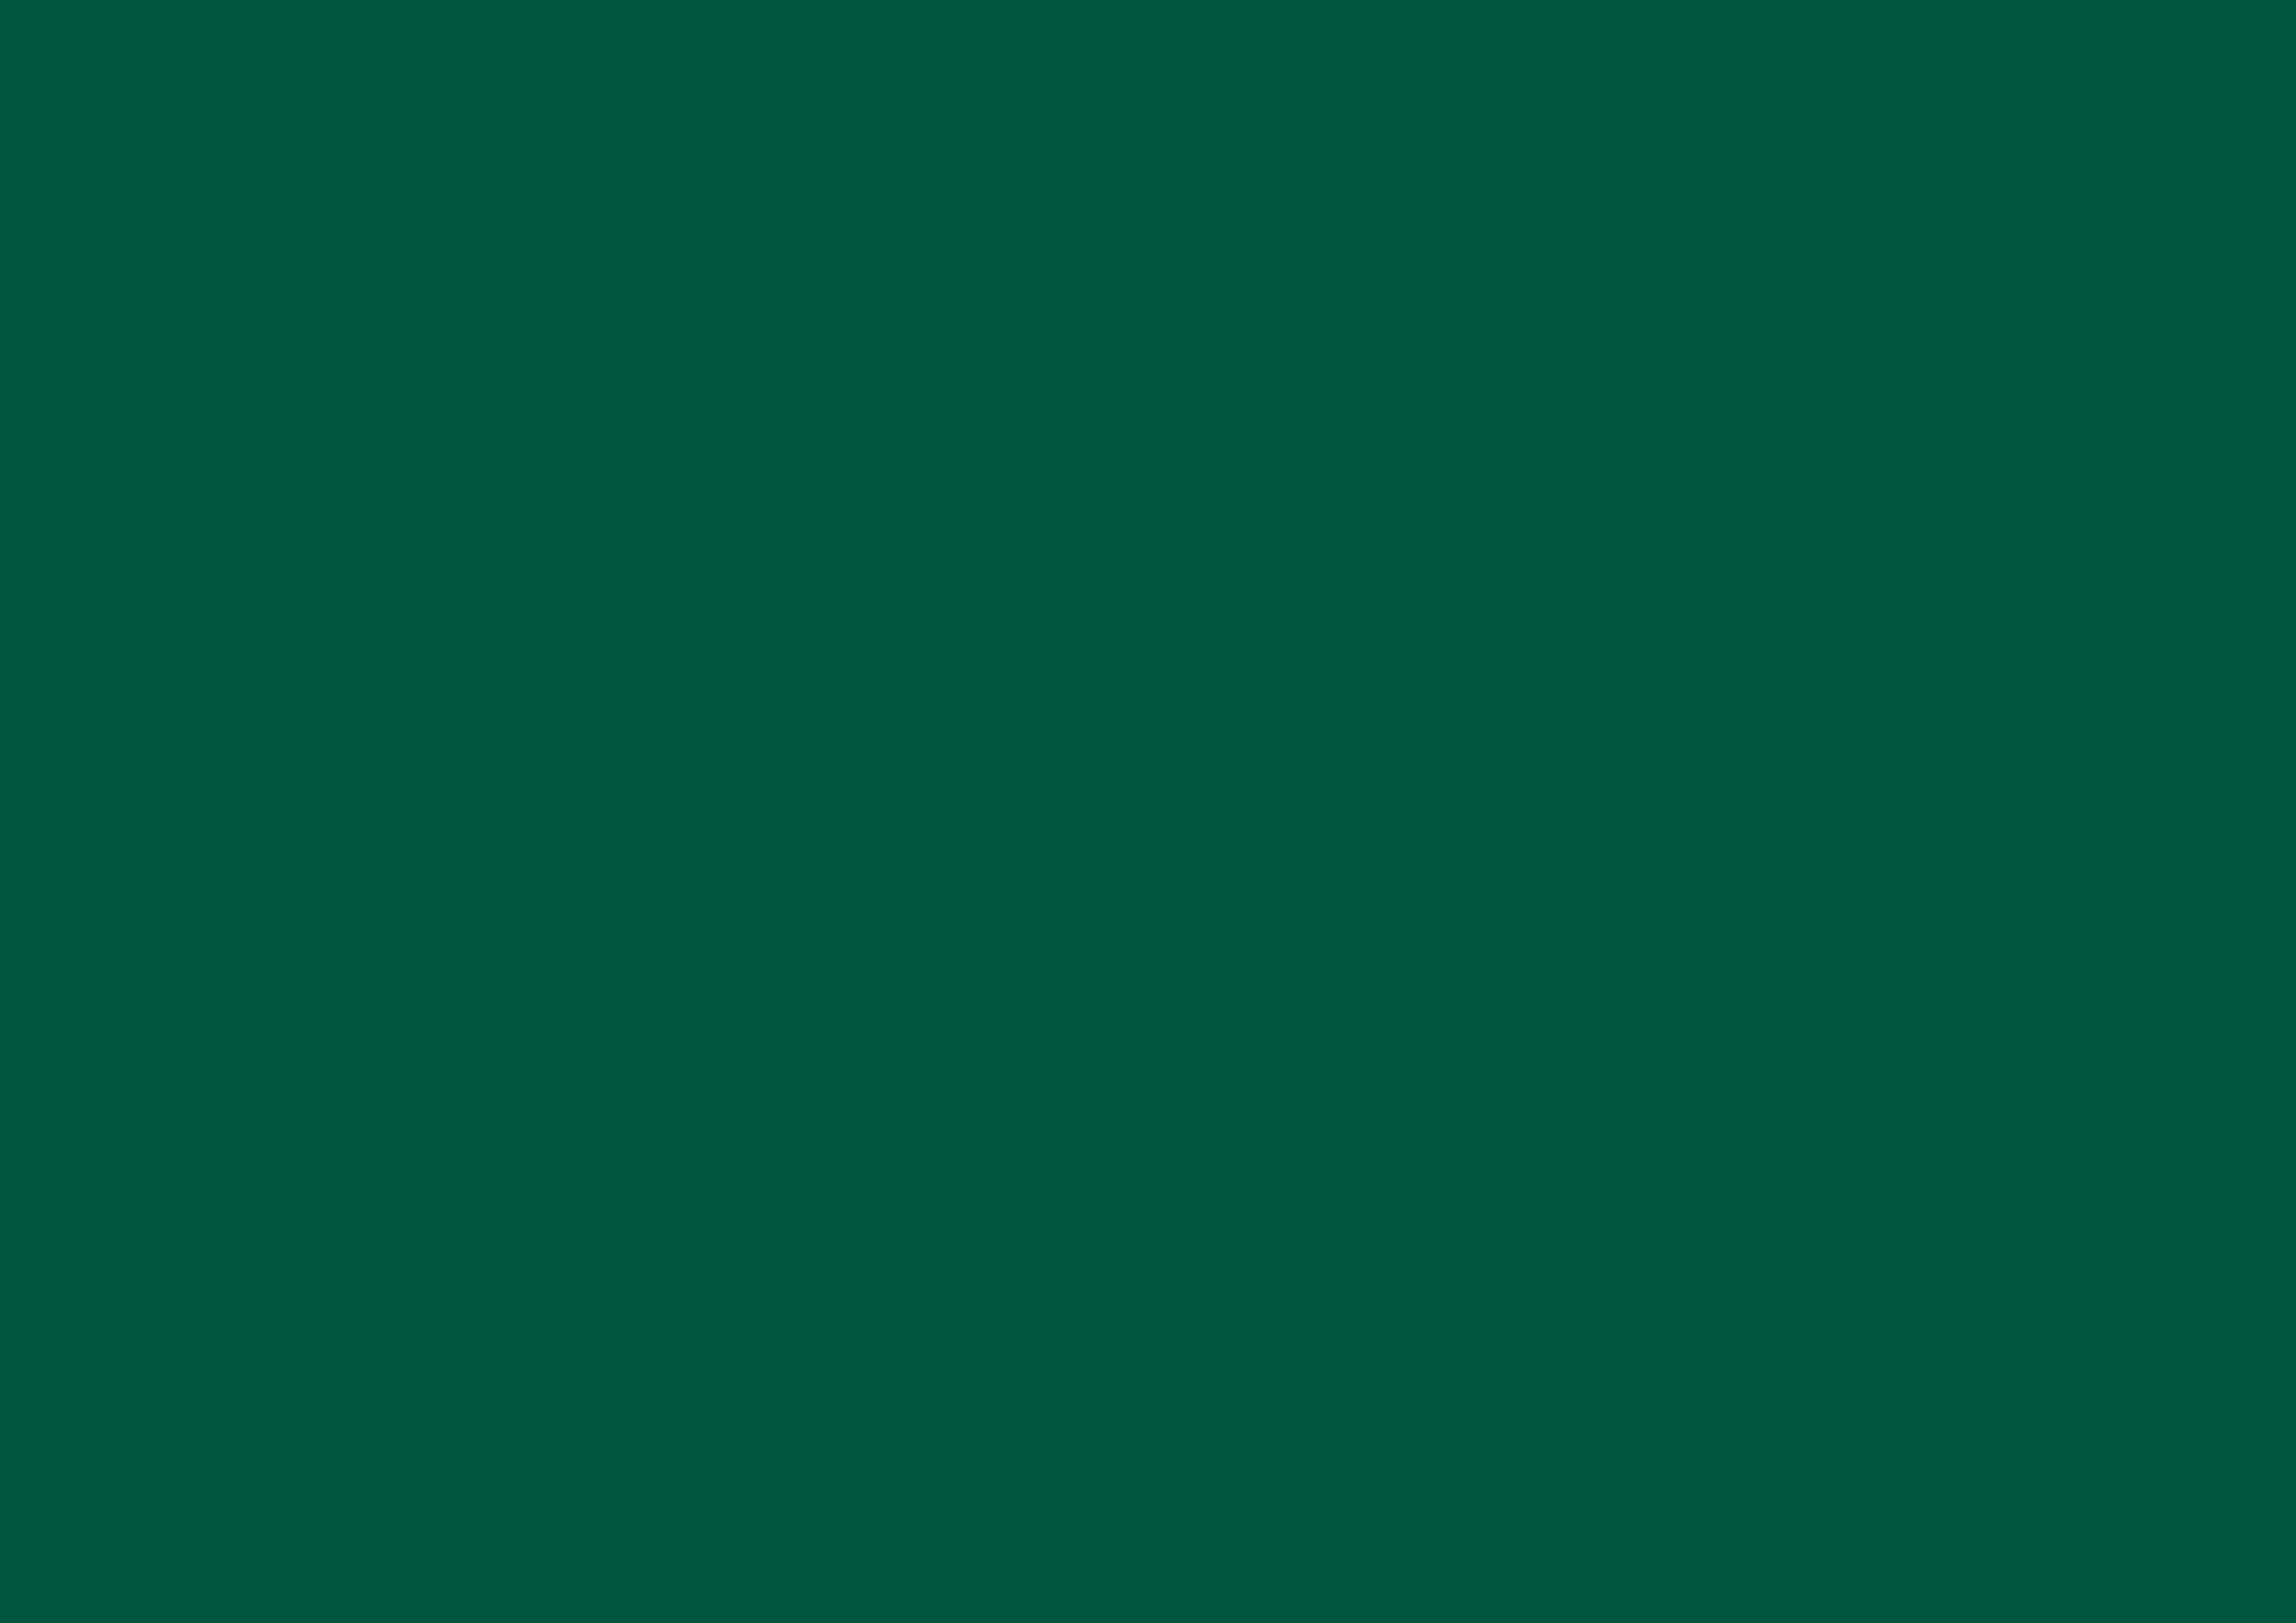 3508x2480 Sacramento State Green Solid Color Background